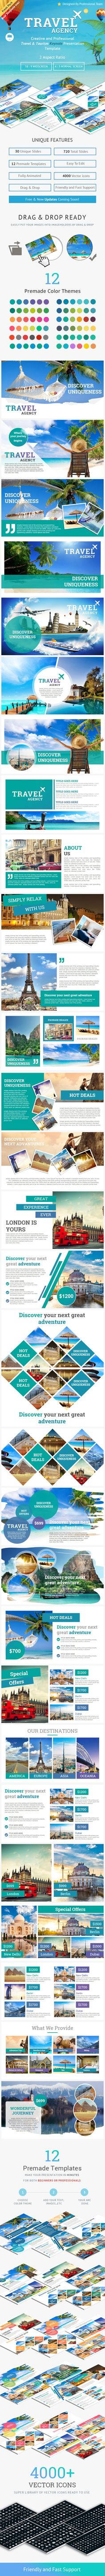 Travel and Tourism Keynote Presentation Template Construction